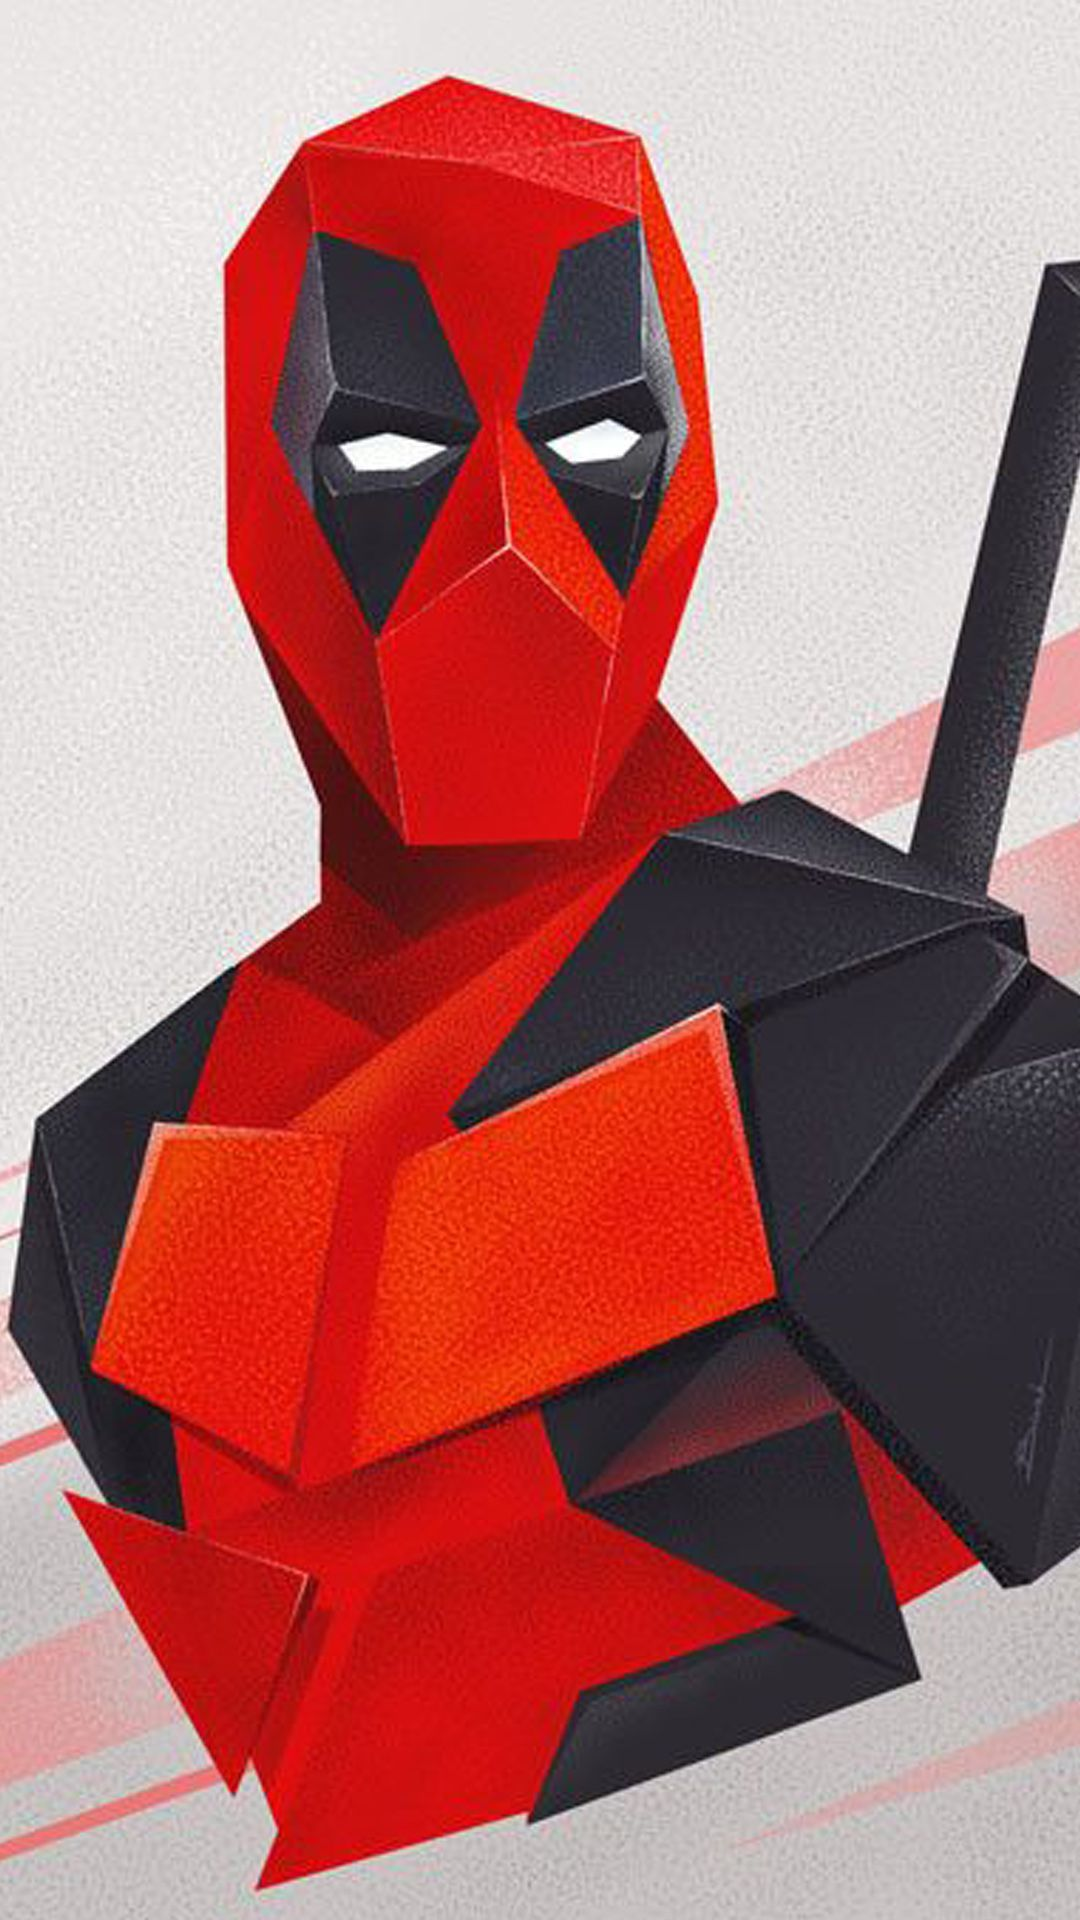 Deadpool Phone Wallpapers Top Free Deadpool Phone Backgrounds